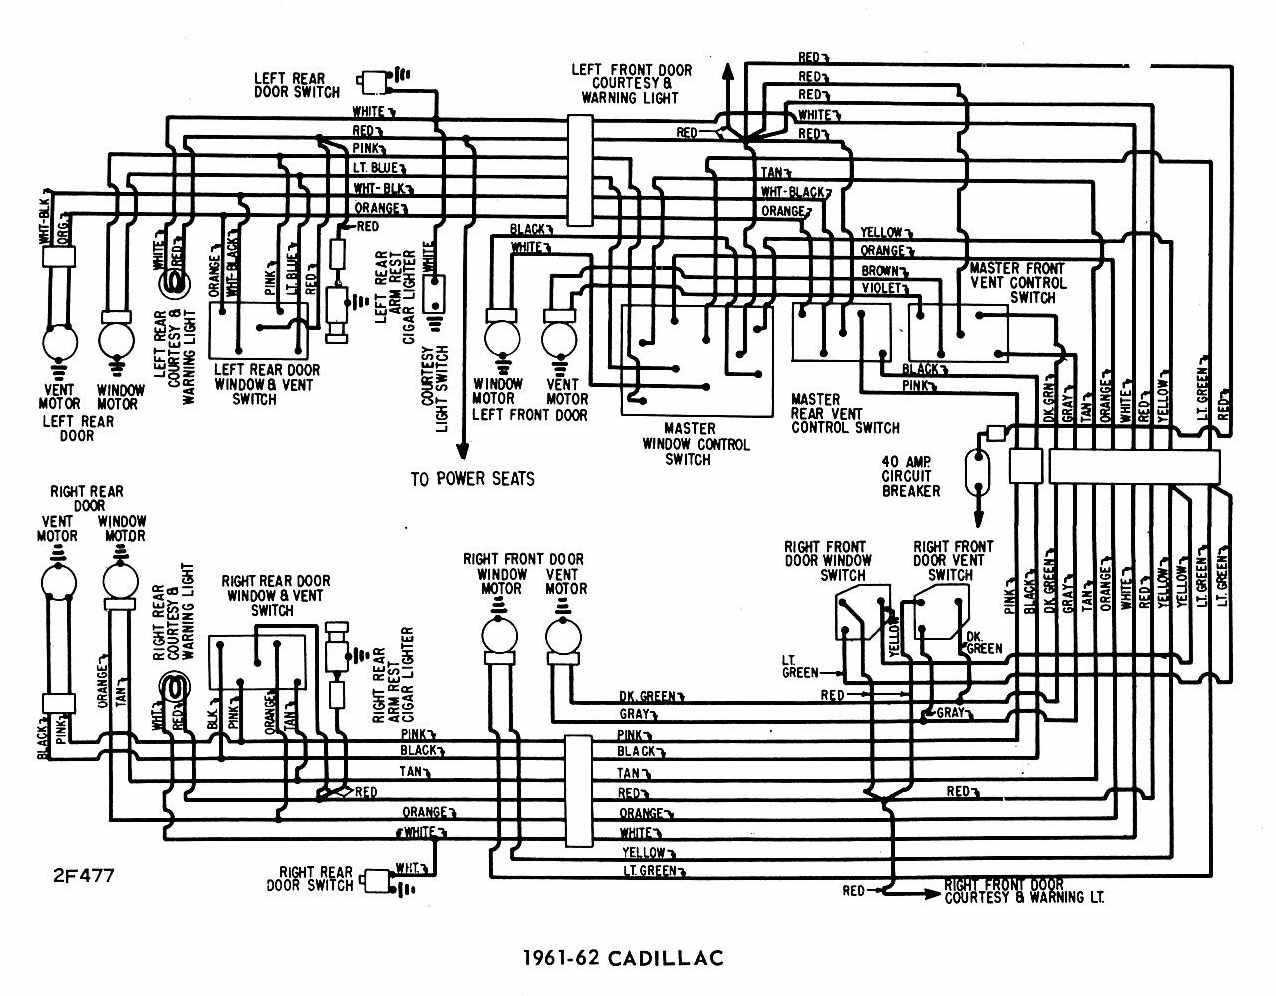 cadillac 1961 1962 windows wiring diagram all about wiring diagrams rh diagramonwiring blogspot com 1999 Cadillac DeVille Wiring-Diagram Cadillac DeVille Stereo Wiring Diagram